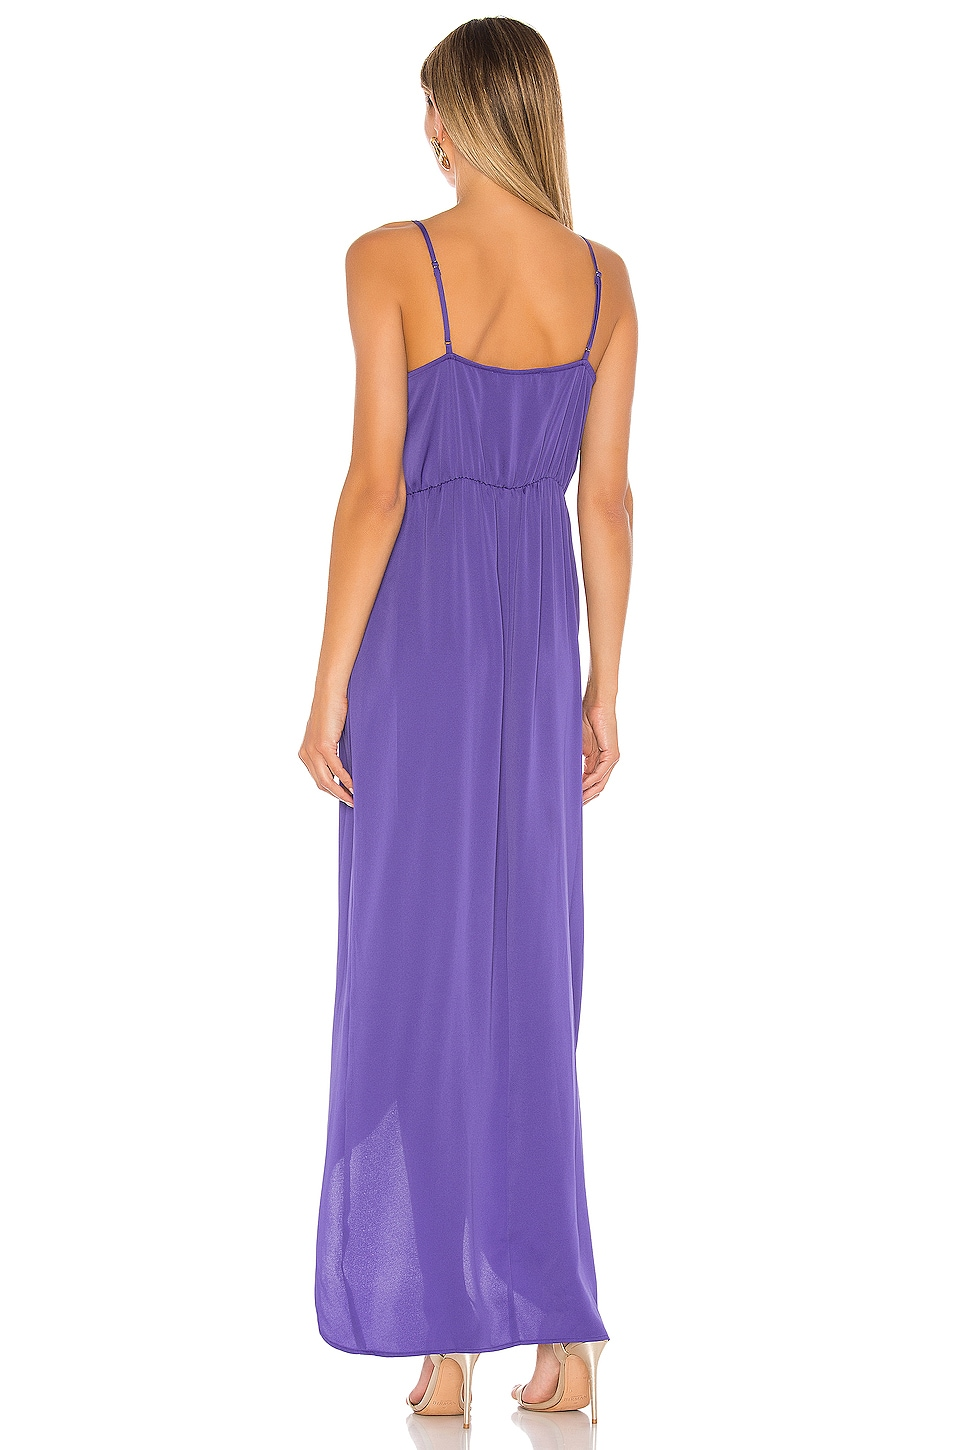 Tie Wrap Maxi Dress, view 3, click to view large image.